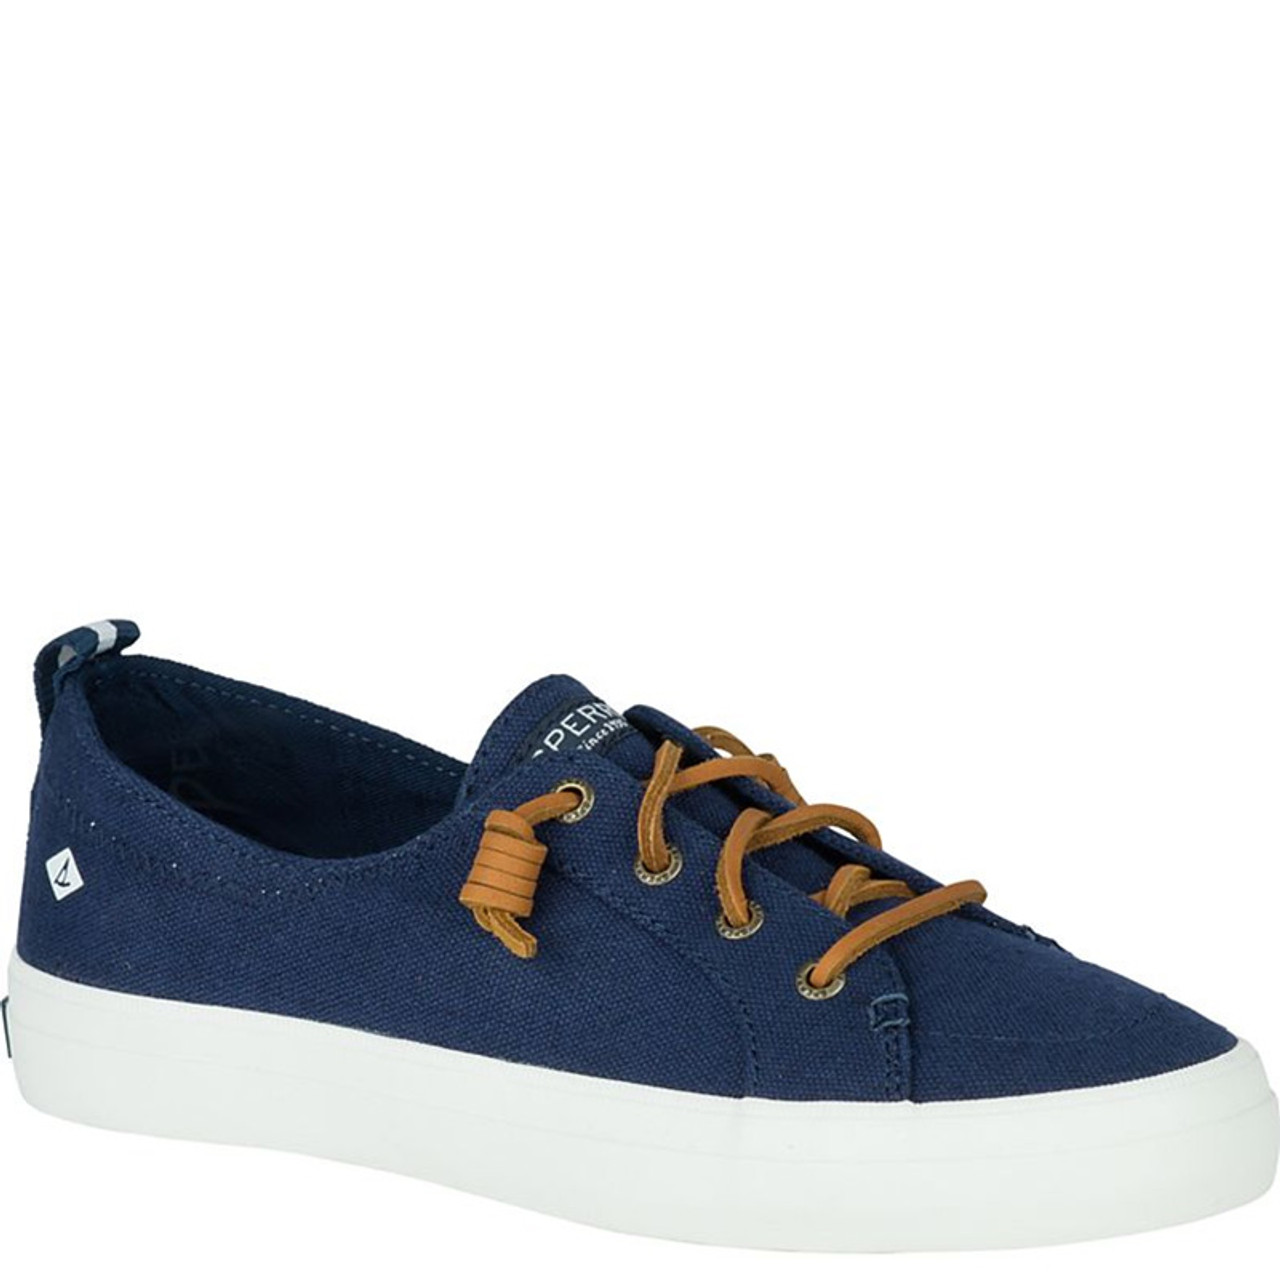 6e5dcd80f5e Sperry STS98642 Women s Crest Vibe Navy Sneakers - Family Footwear Center